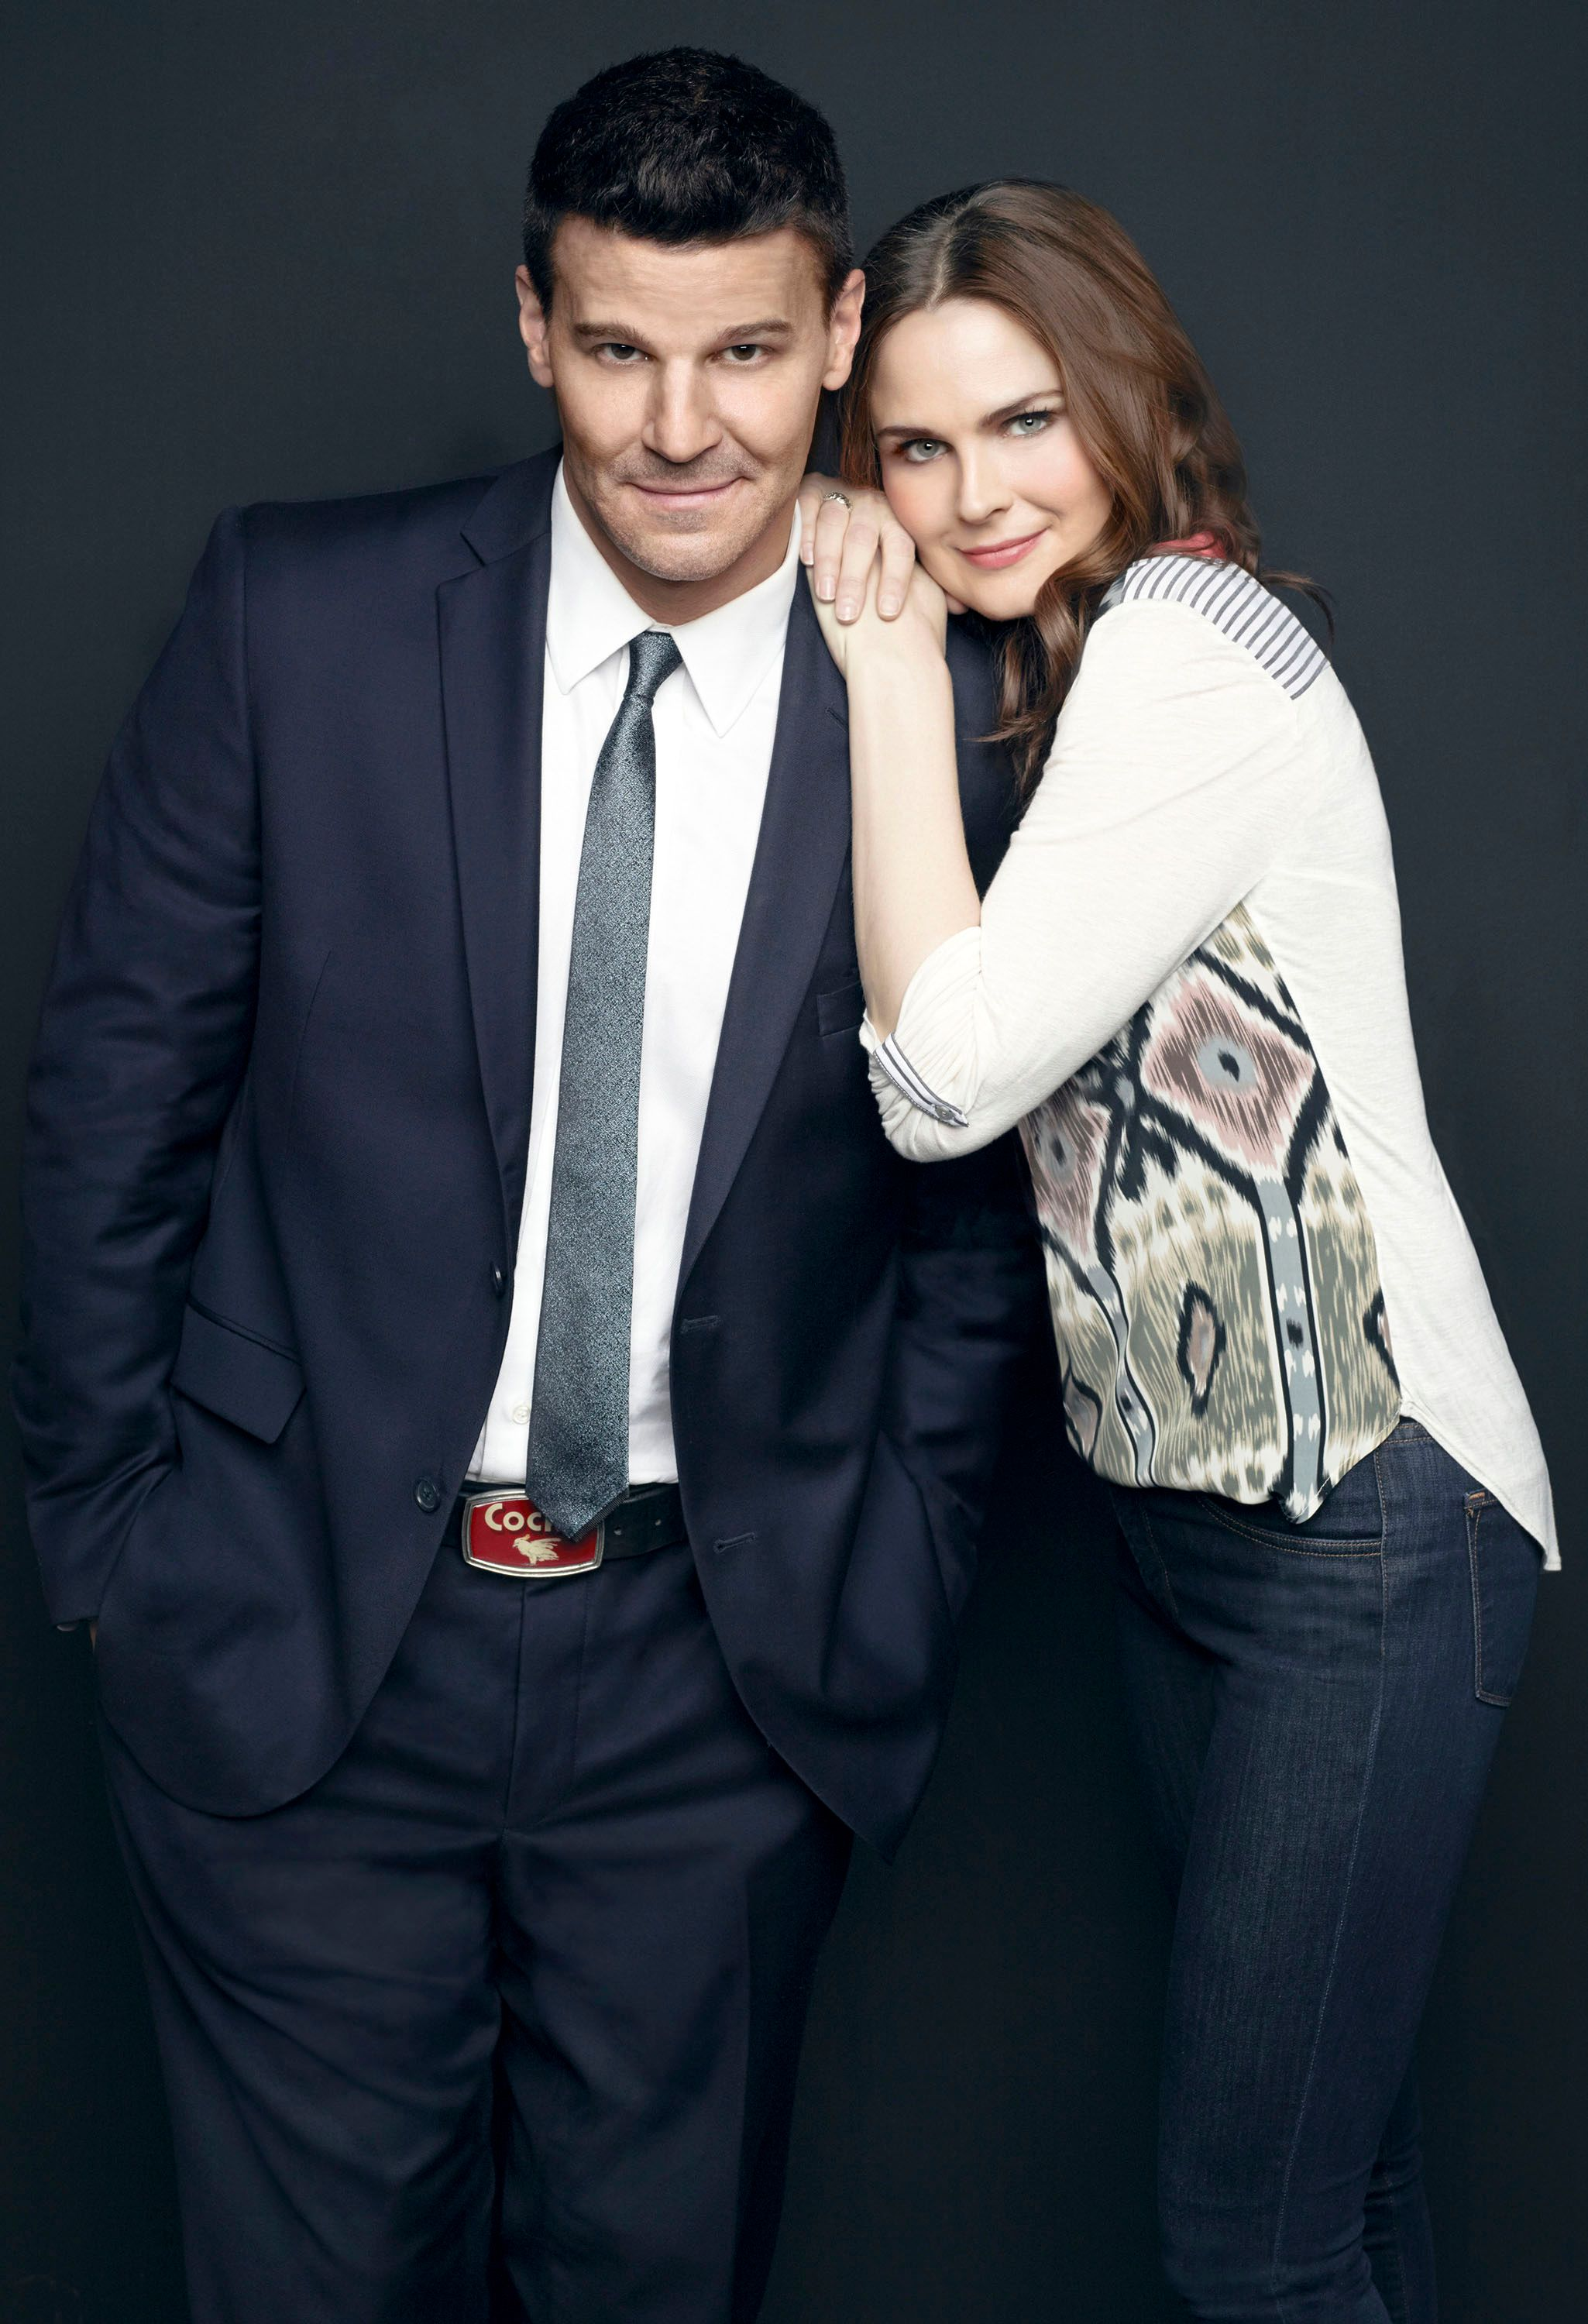 david boreanaz bones season 9 - photo #1